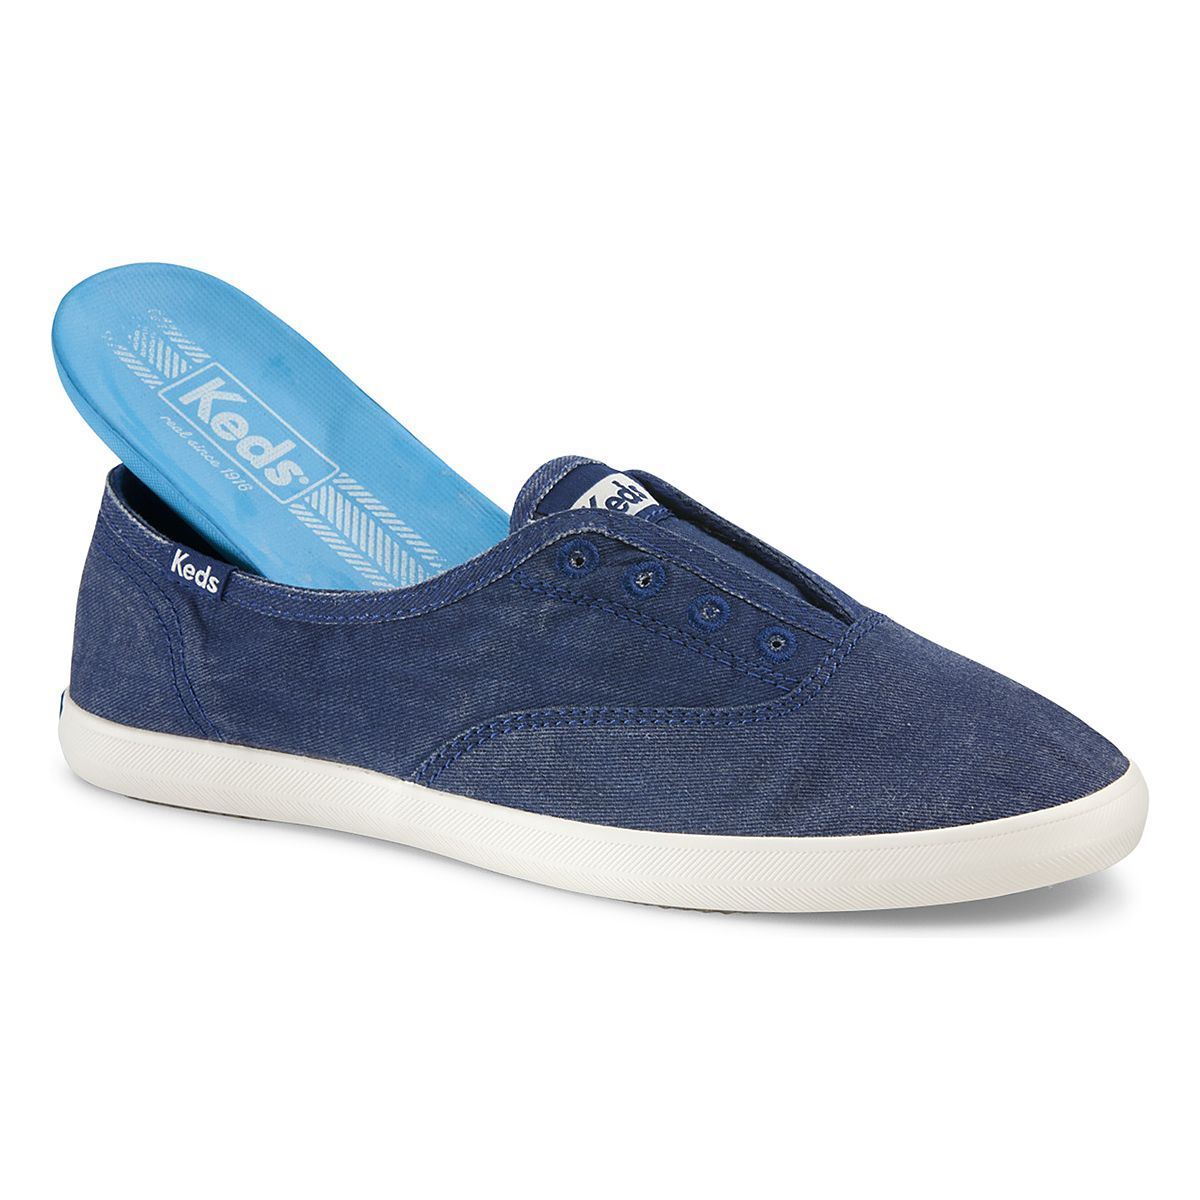 Shop Keds Shoes at Journeys. Choose from Many Styles for Women including the Champion, Triple and Chillax Casual Shoes. Plus, Free Shipping and In-Store Returns on Orders Over $ Shop Keds .